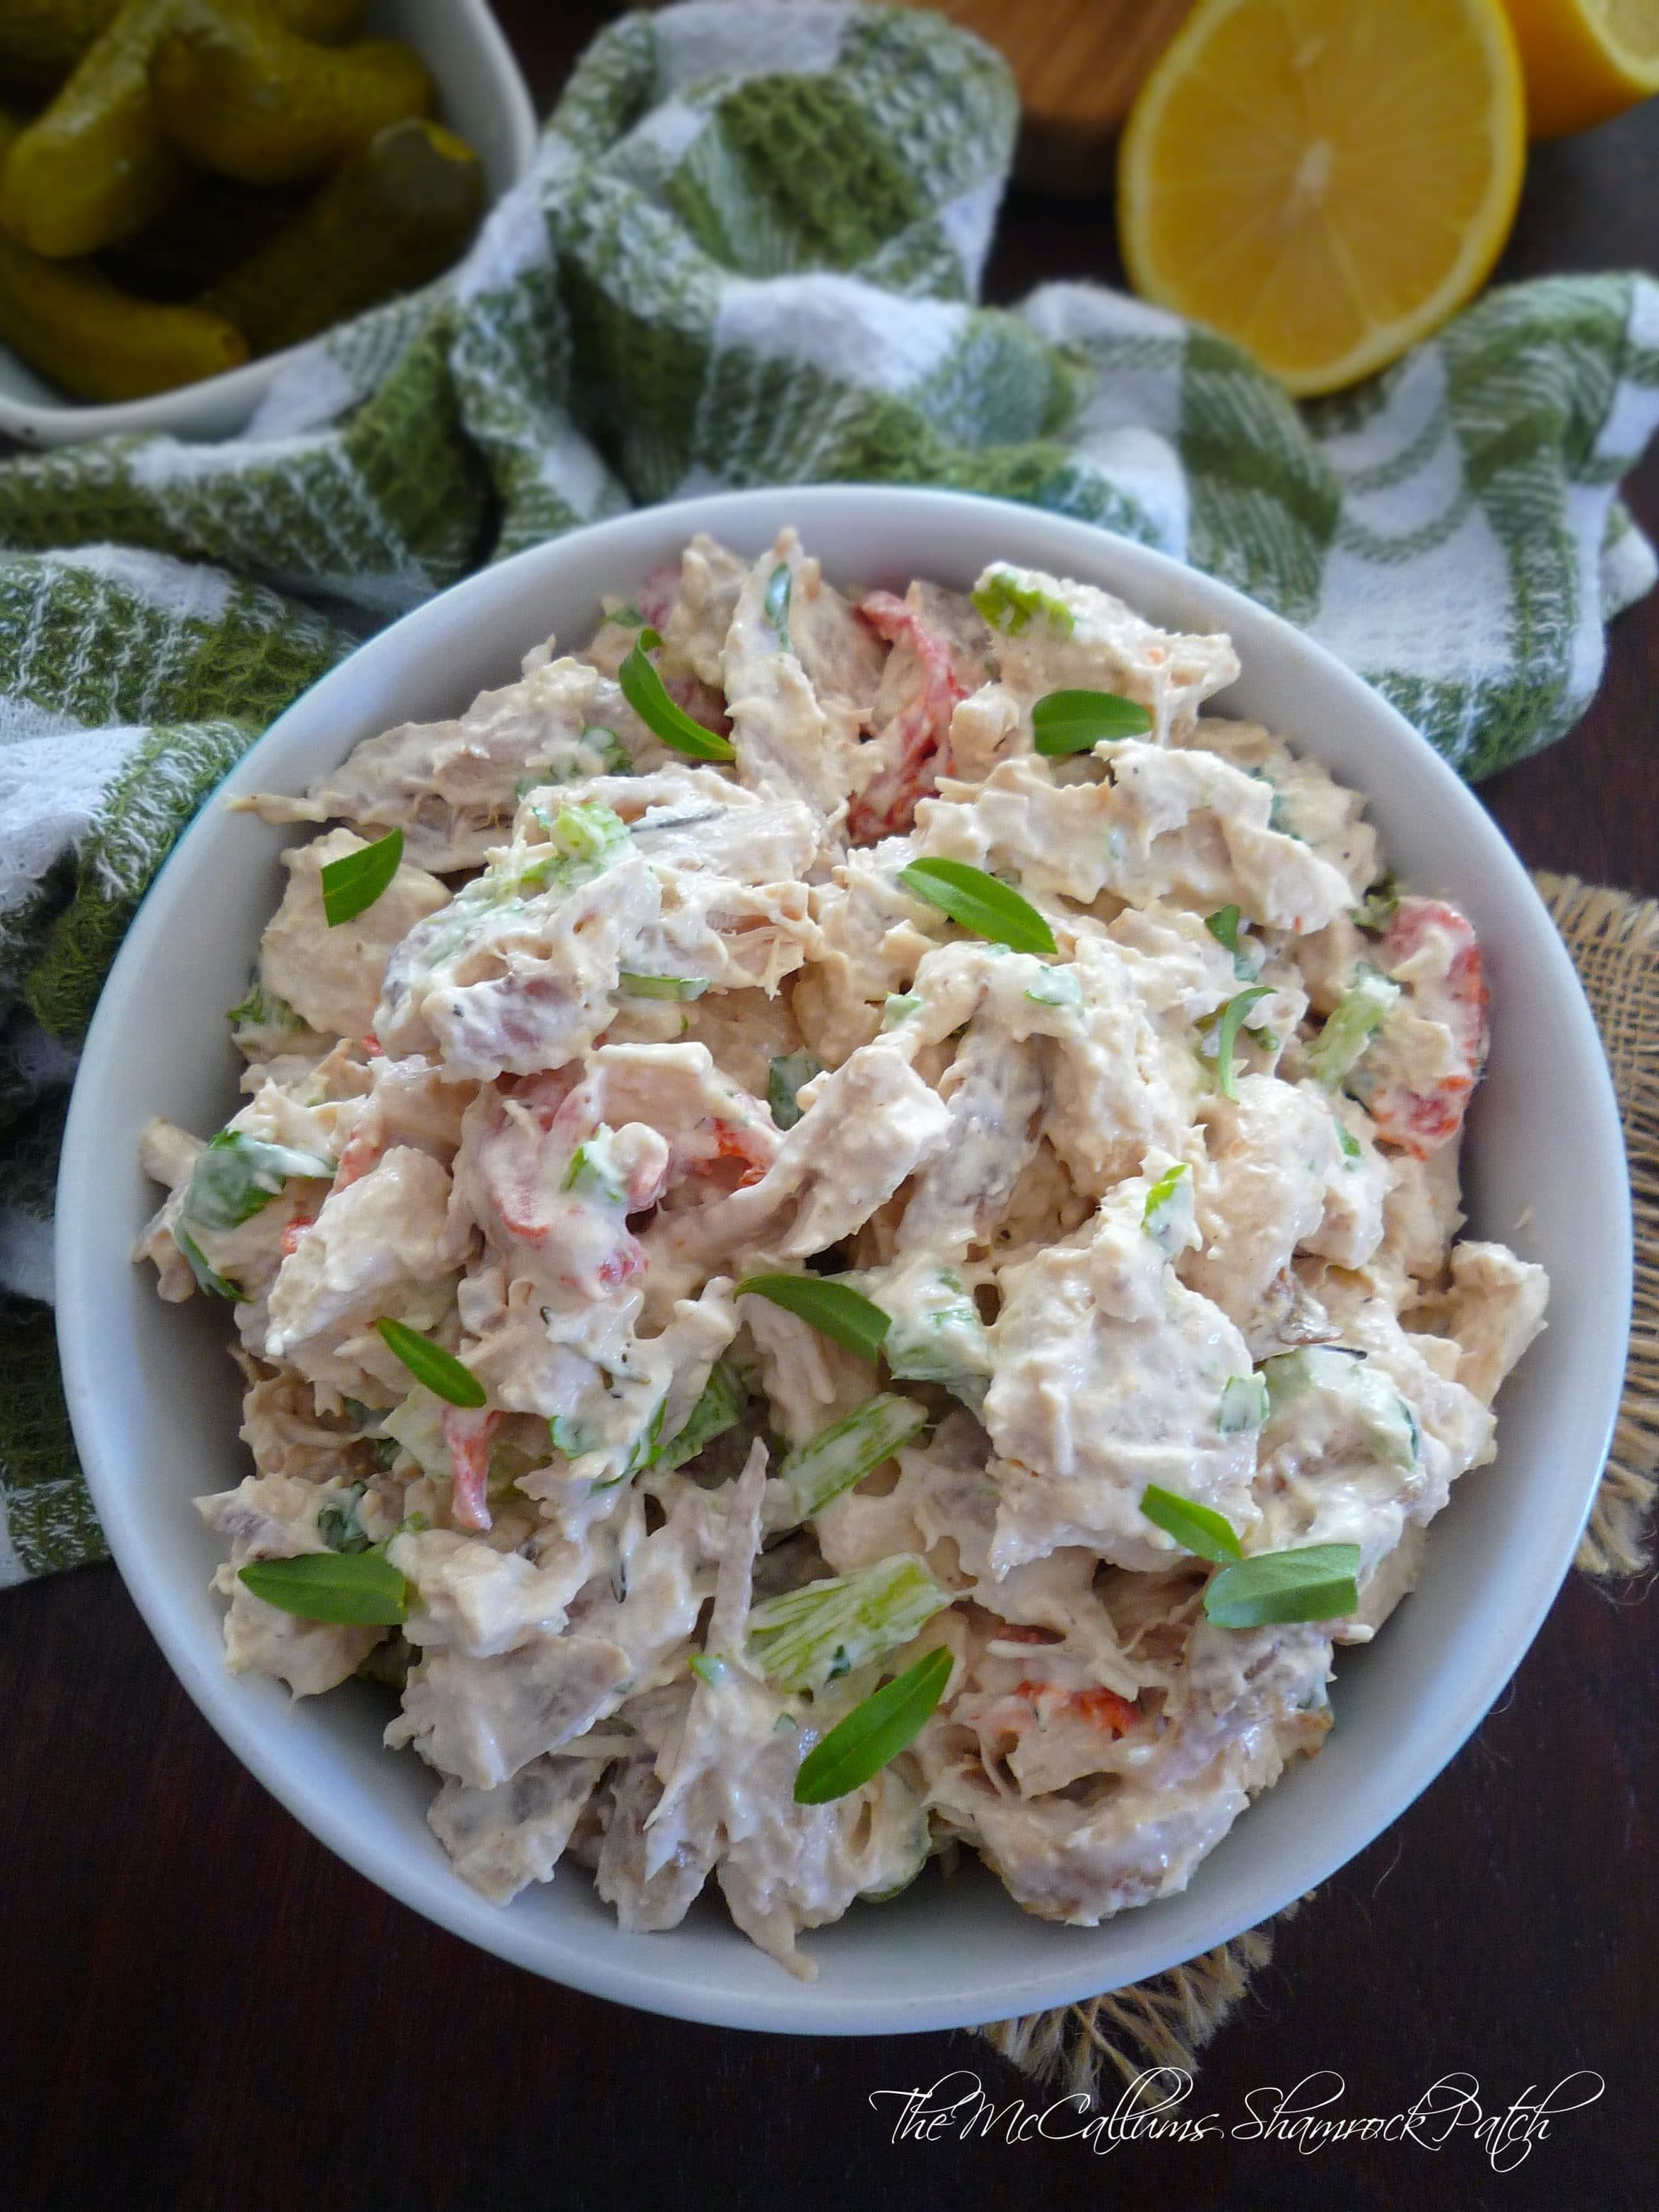 Lemony Tarragon Chicken Salad | The McCallum's Shamrock Patch